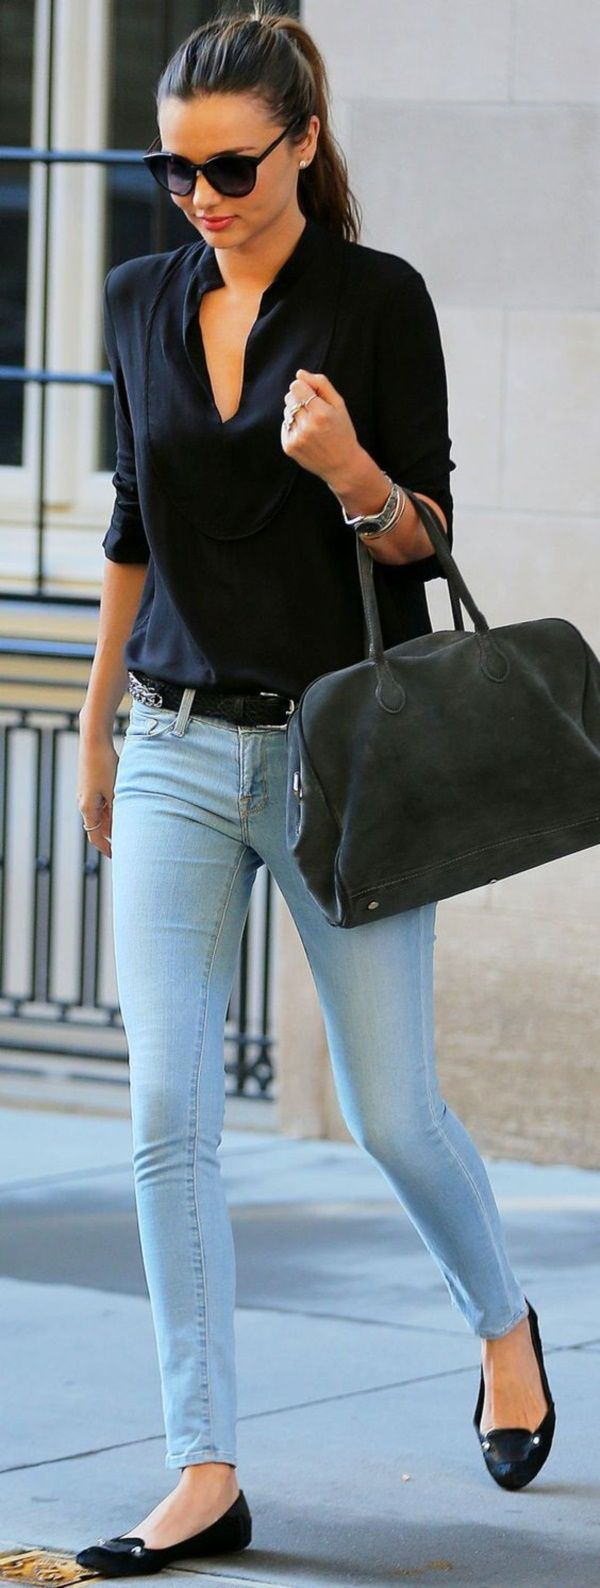 40 Casually Chic Outfits For Smart And Grown-Up Looks - Stylishwife